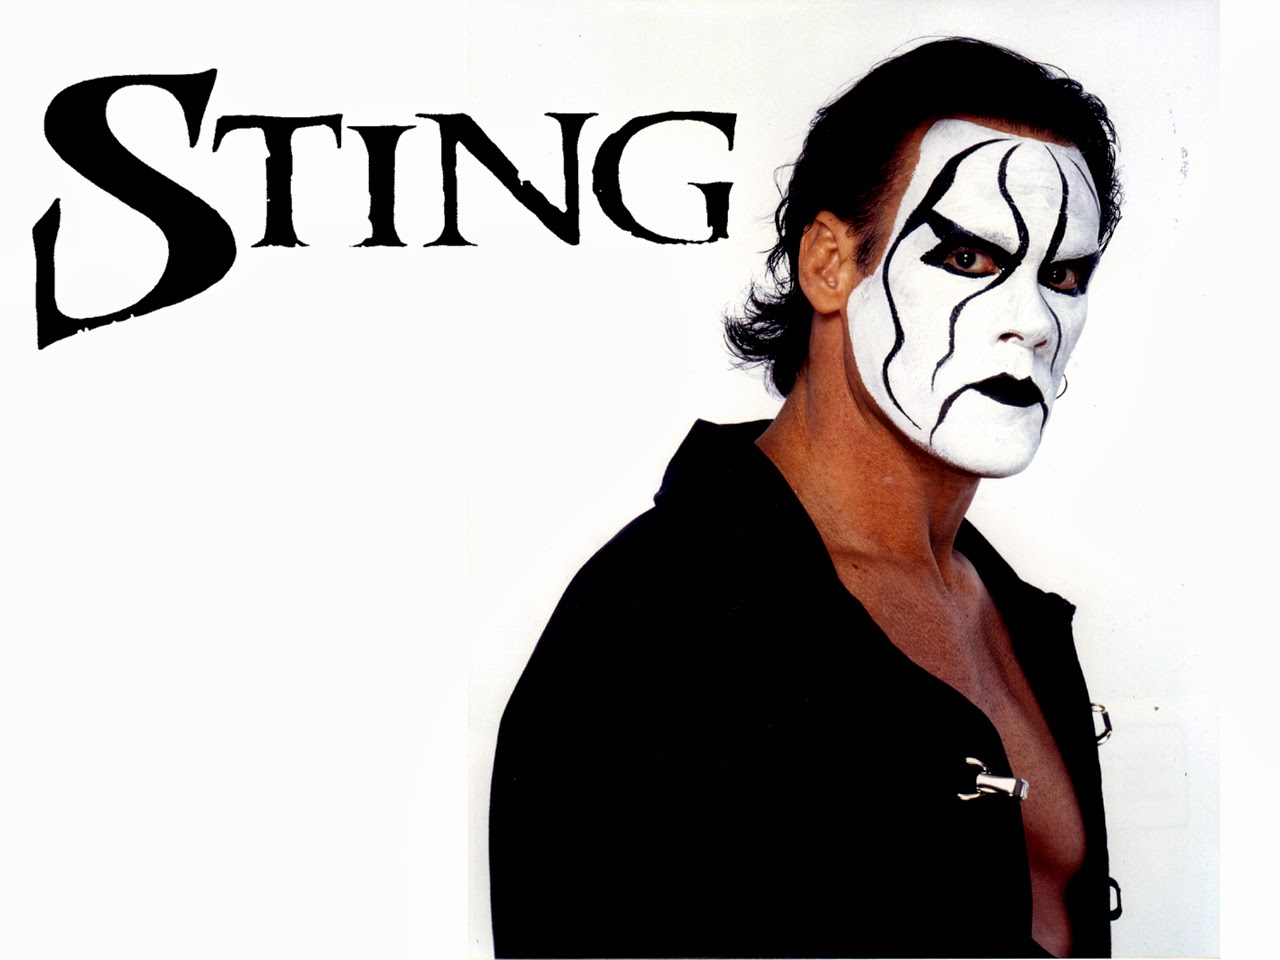 Sting Hd Wallpapers Free Download